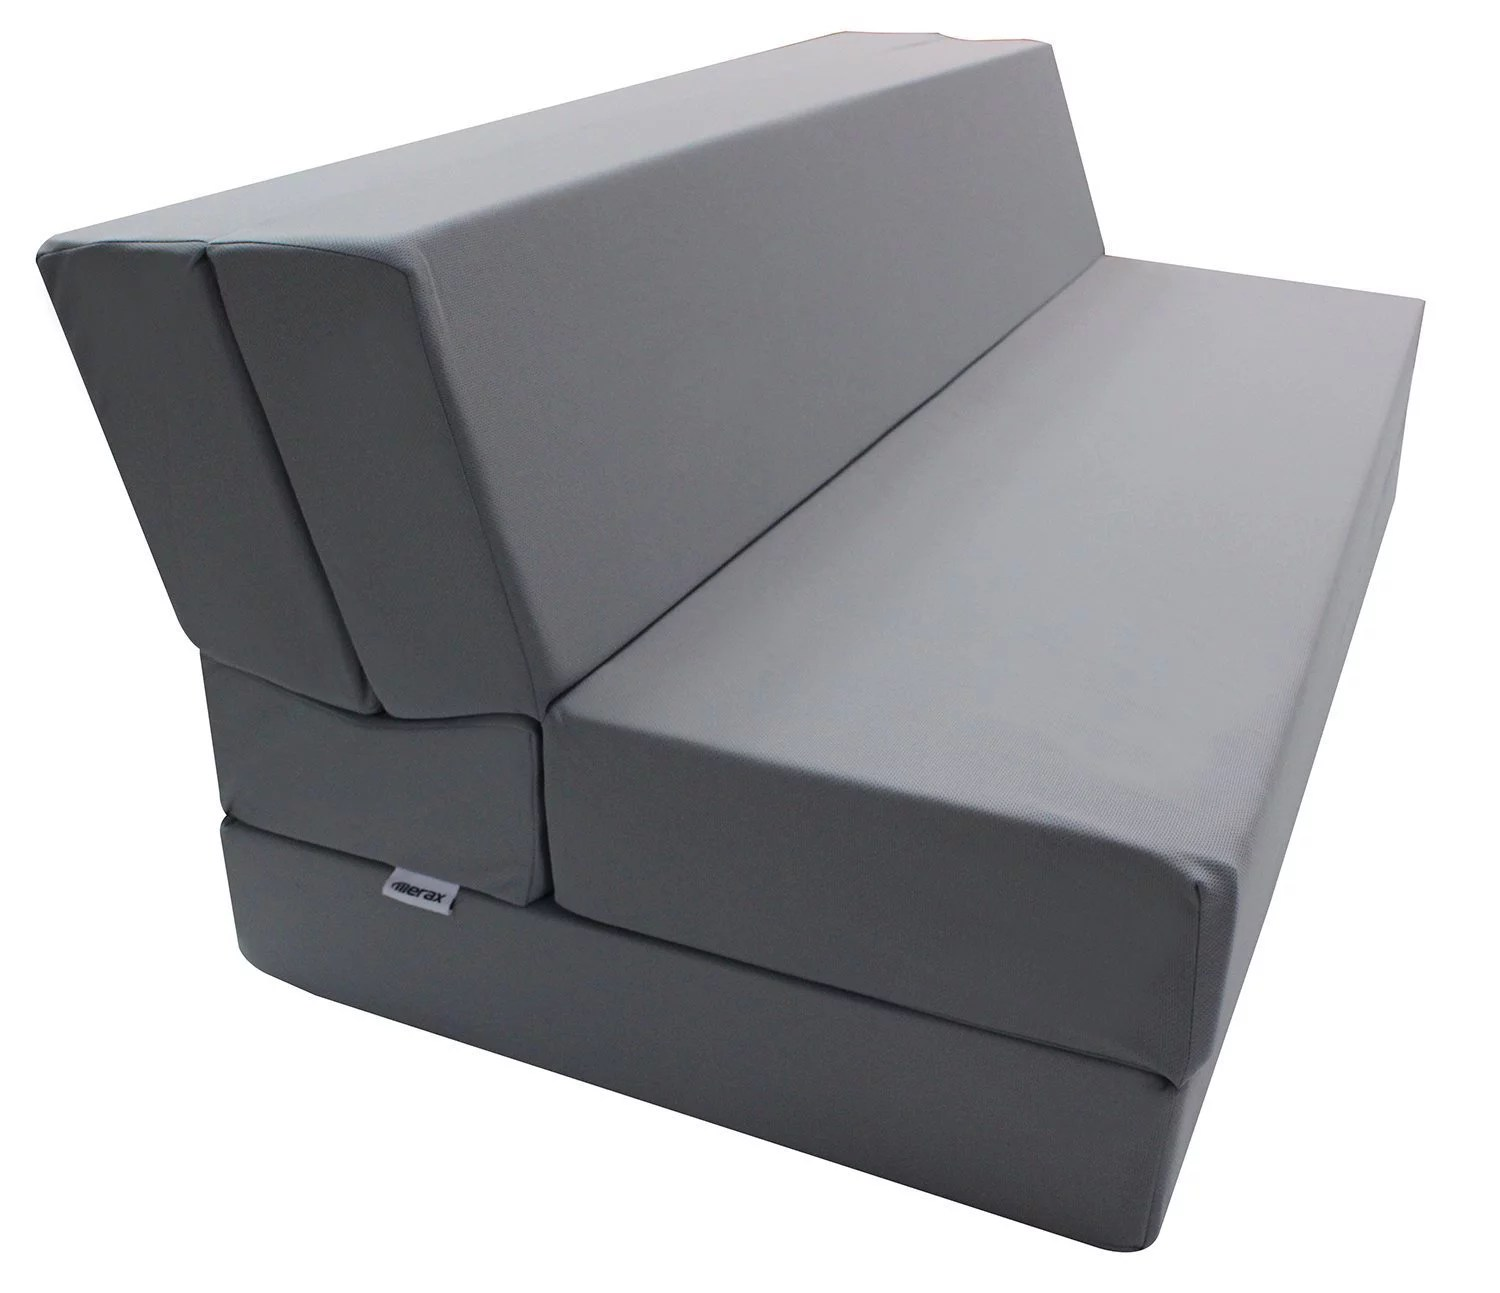 Foam Bed Foam Sofa Bed Foam Fold Out Sofa Bed Australia Couch And